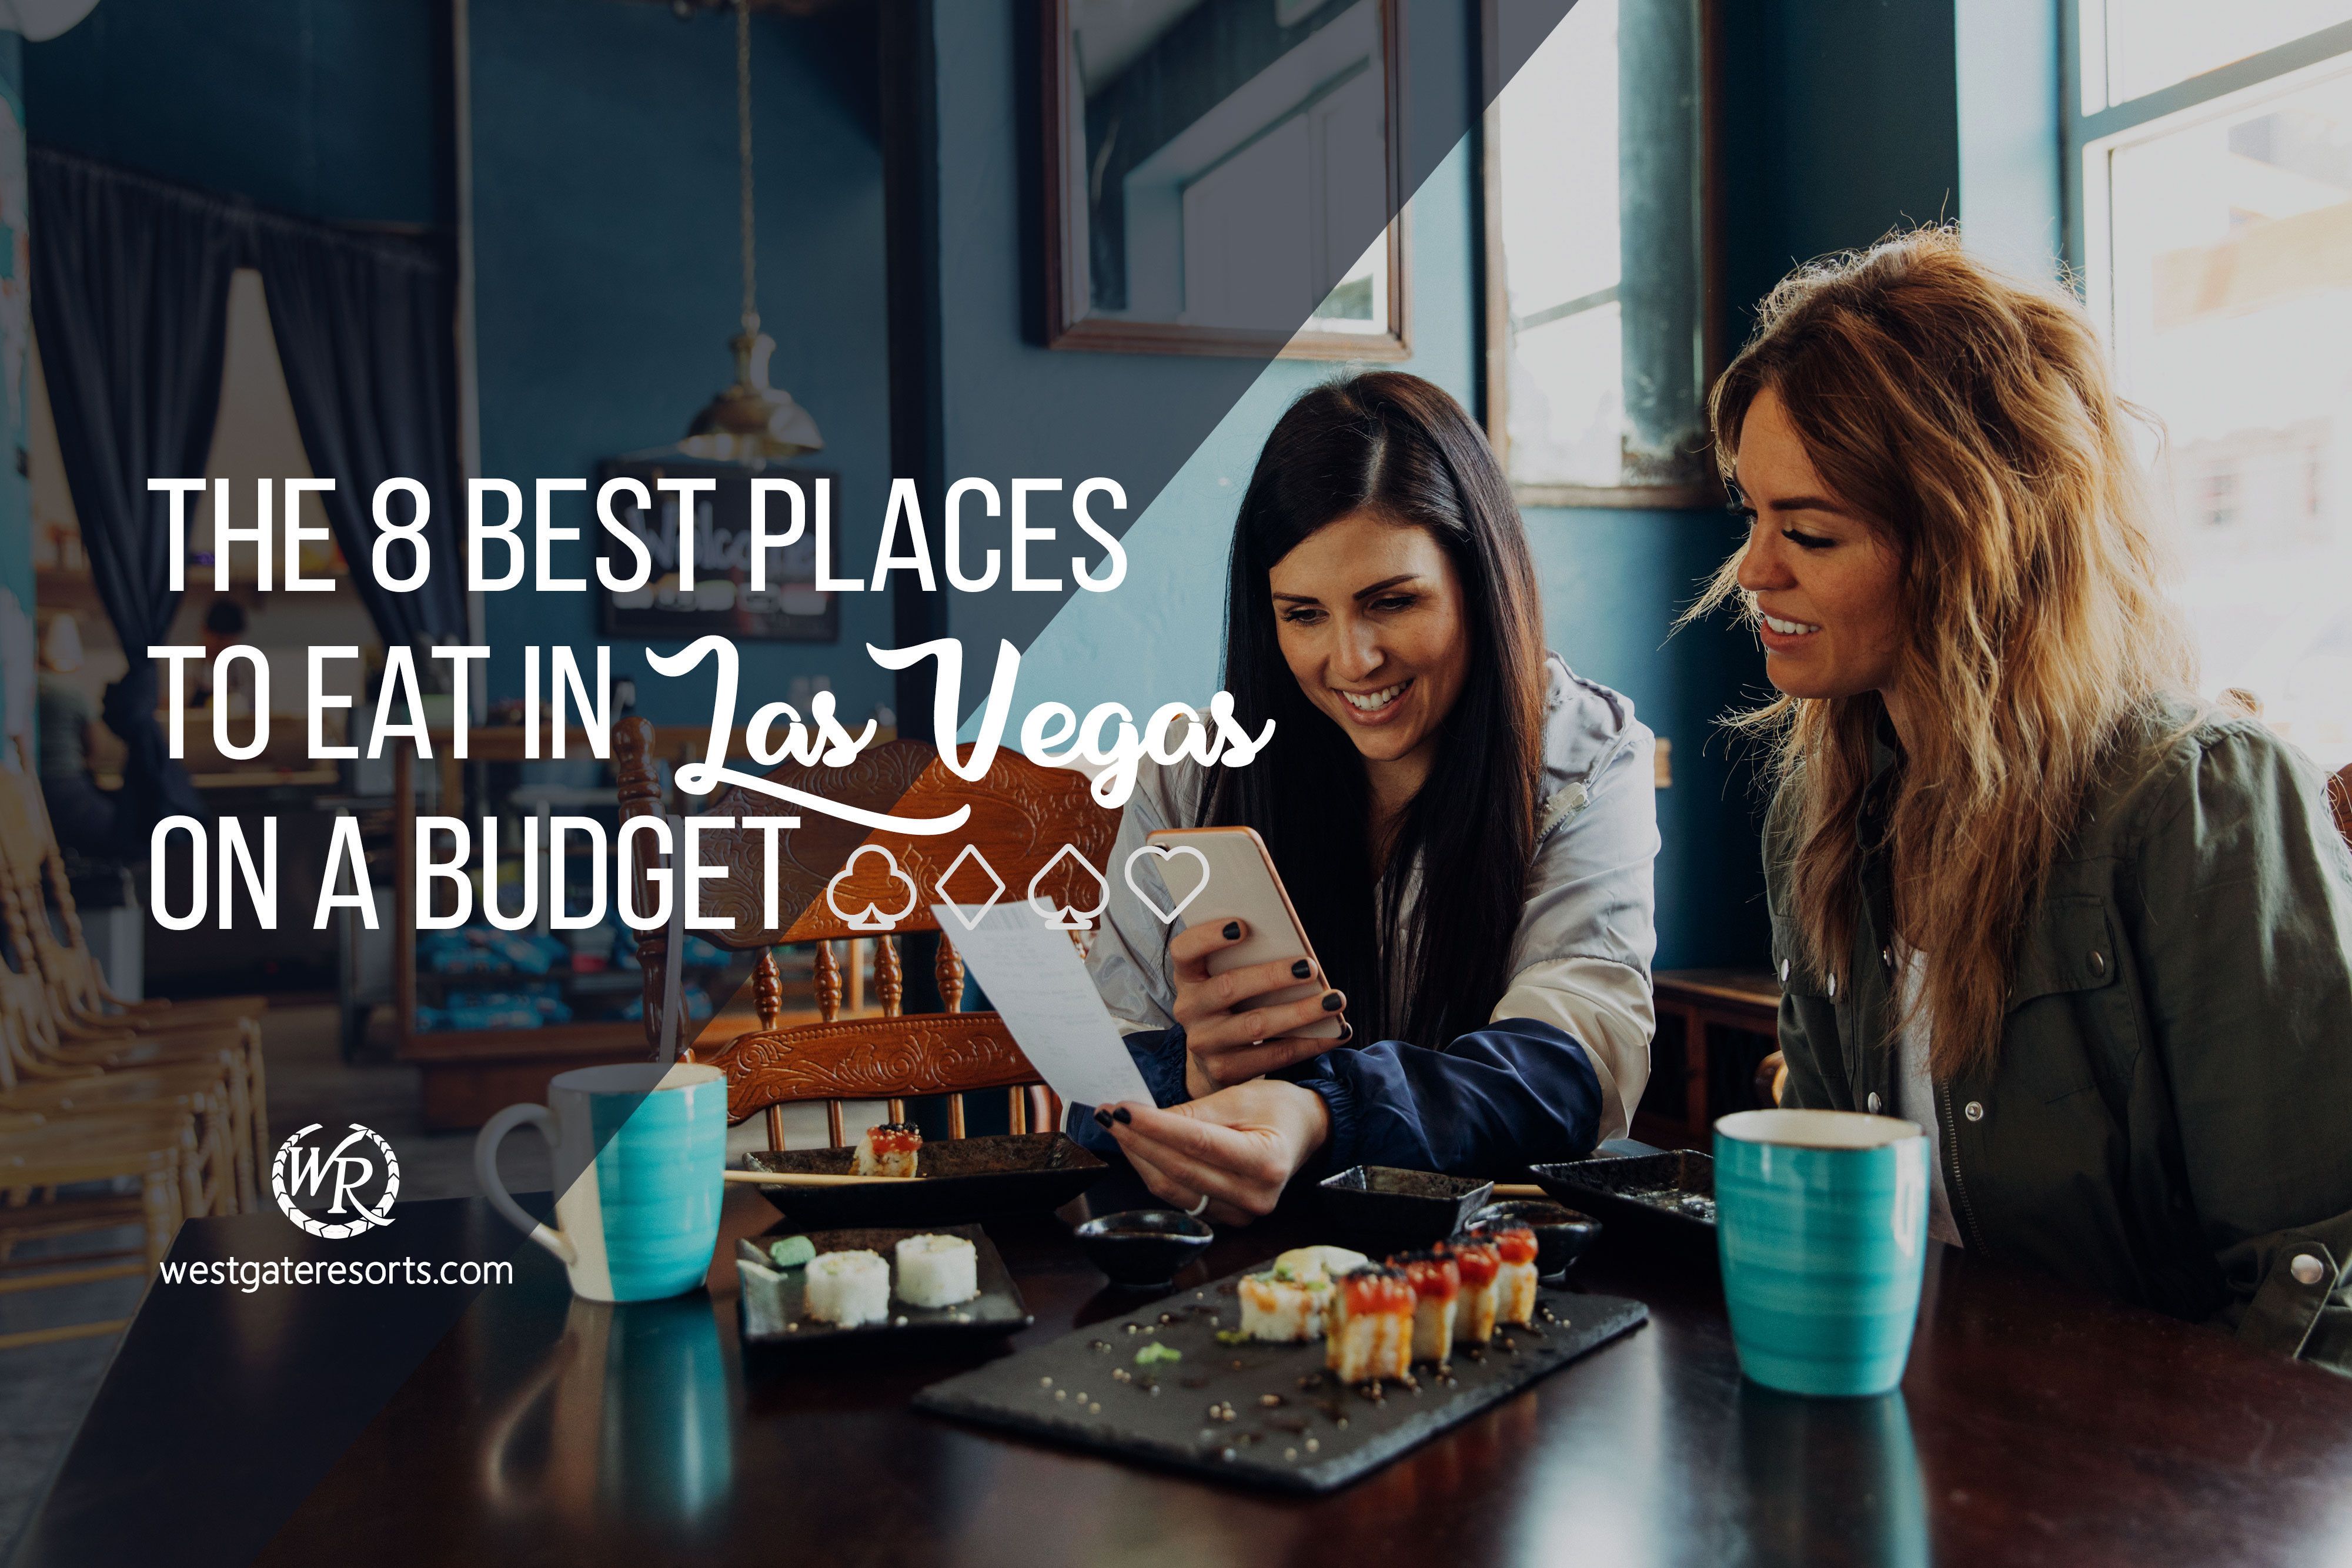 The 8 Best Places to Eat in Las Vegas on a Budget